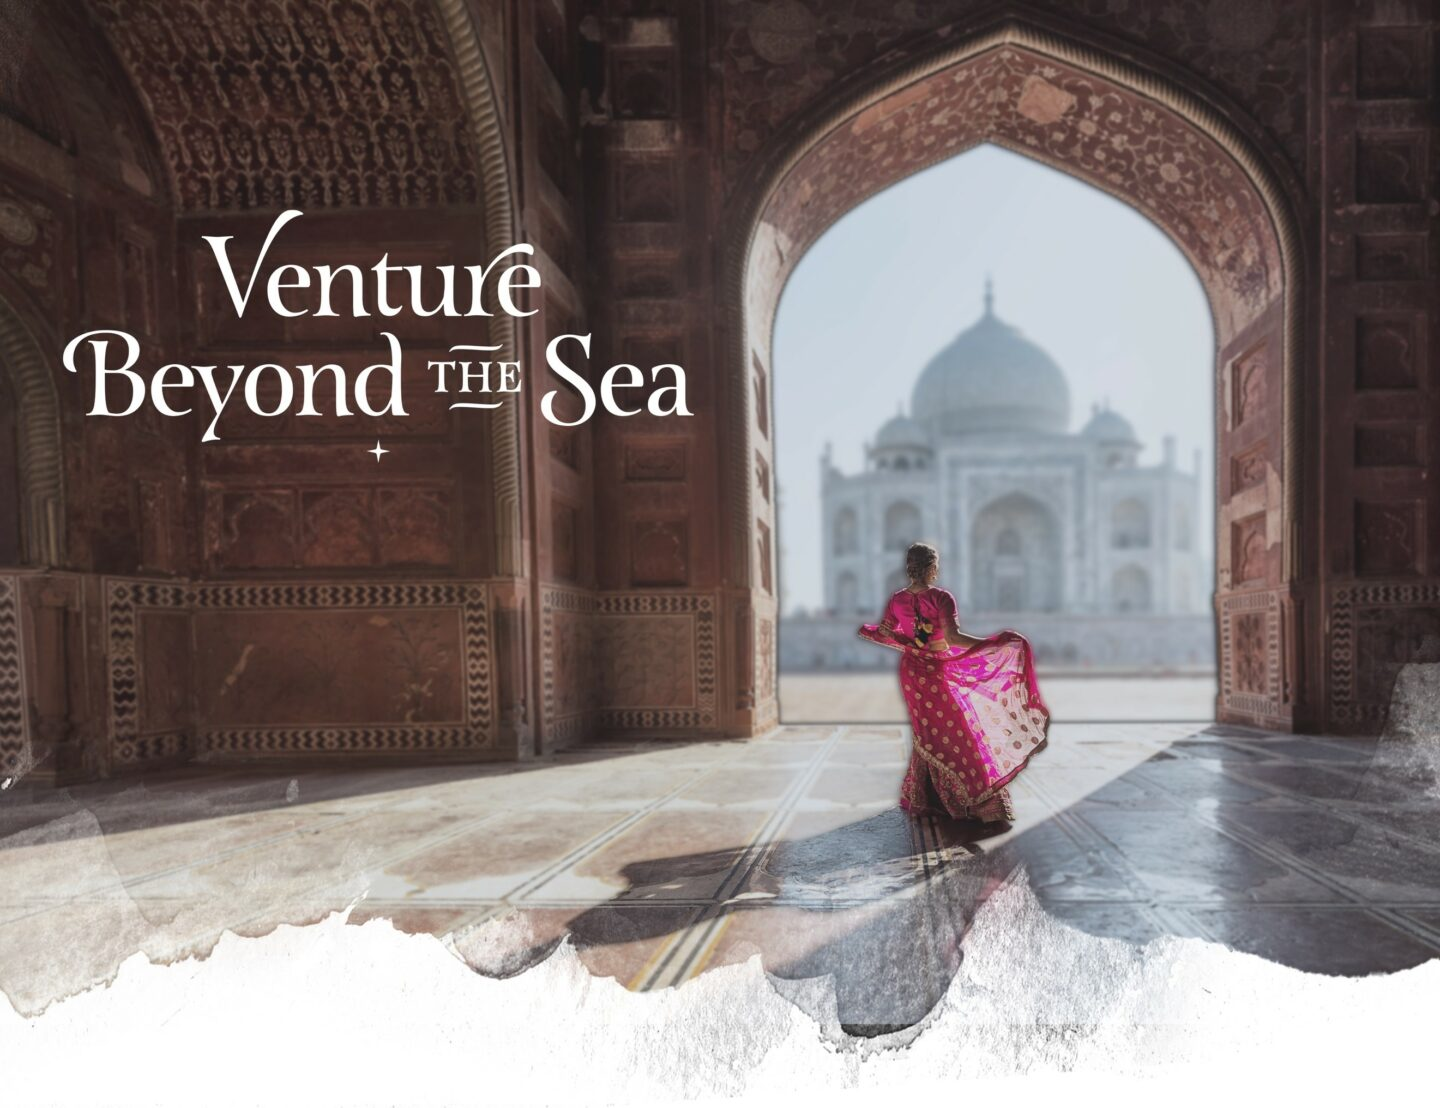 Azamara has had a makeover and has announced it's new land voyage programme